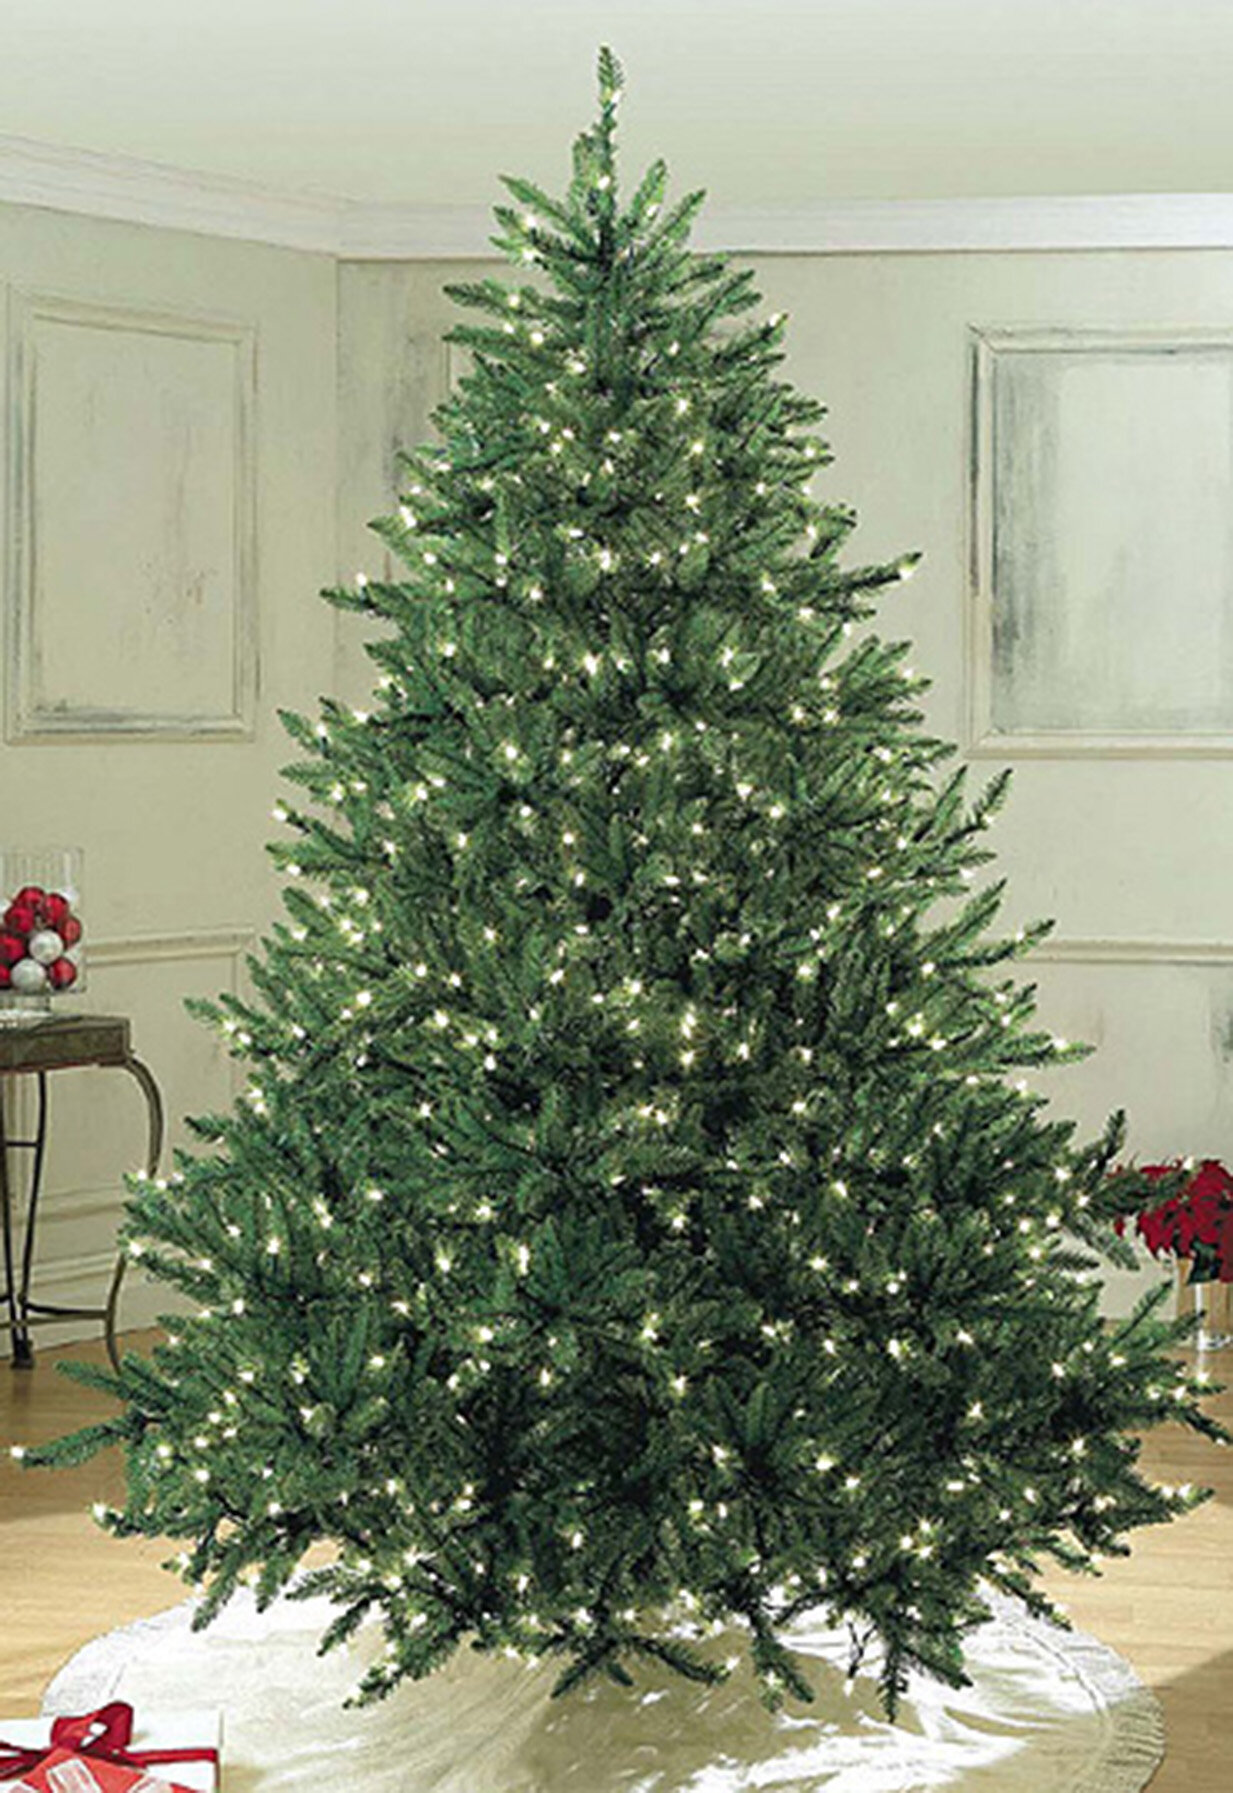 Queens Of Christmas Sequoia Pre Lit Led 7 5 Green Artificial Christmas Tree With 2000 Clear White Lights Wayfair